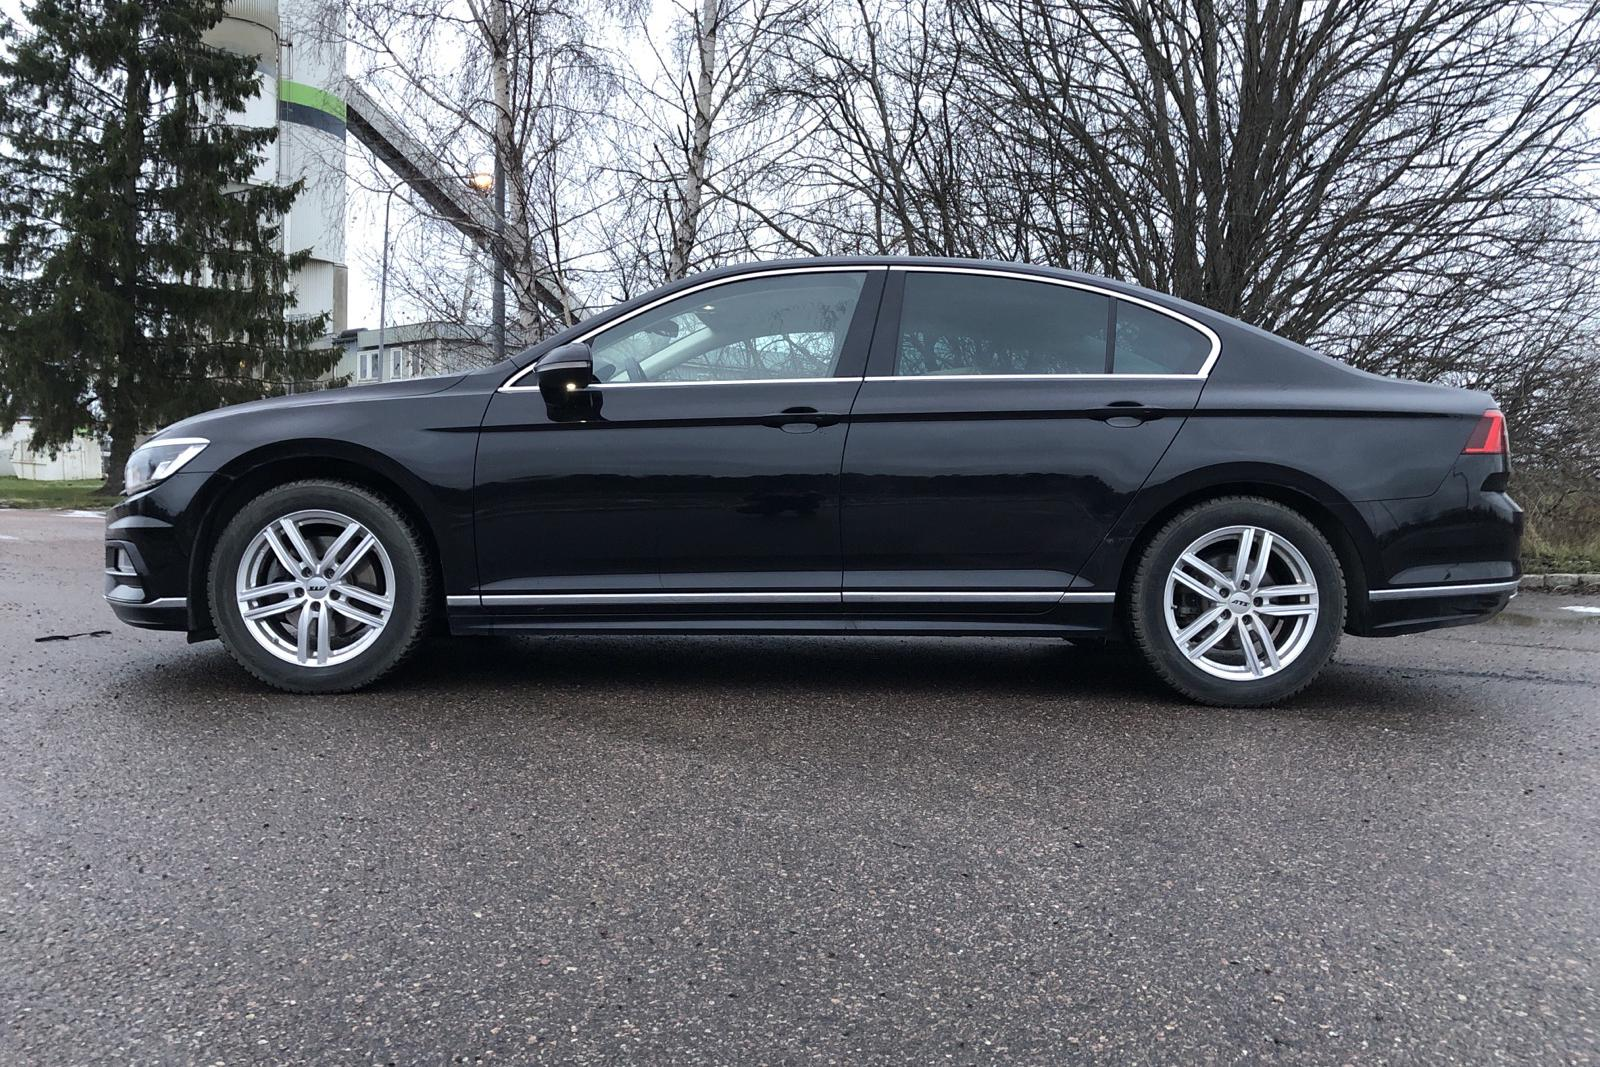 VW Passat 2.0 TDI (190hk) - 71 970 km - Automatic - black - 2018